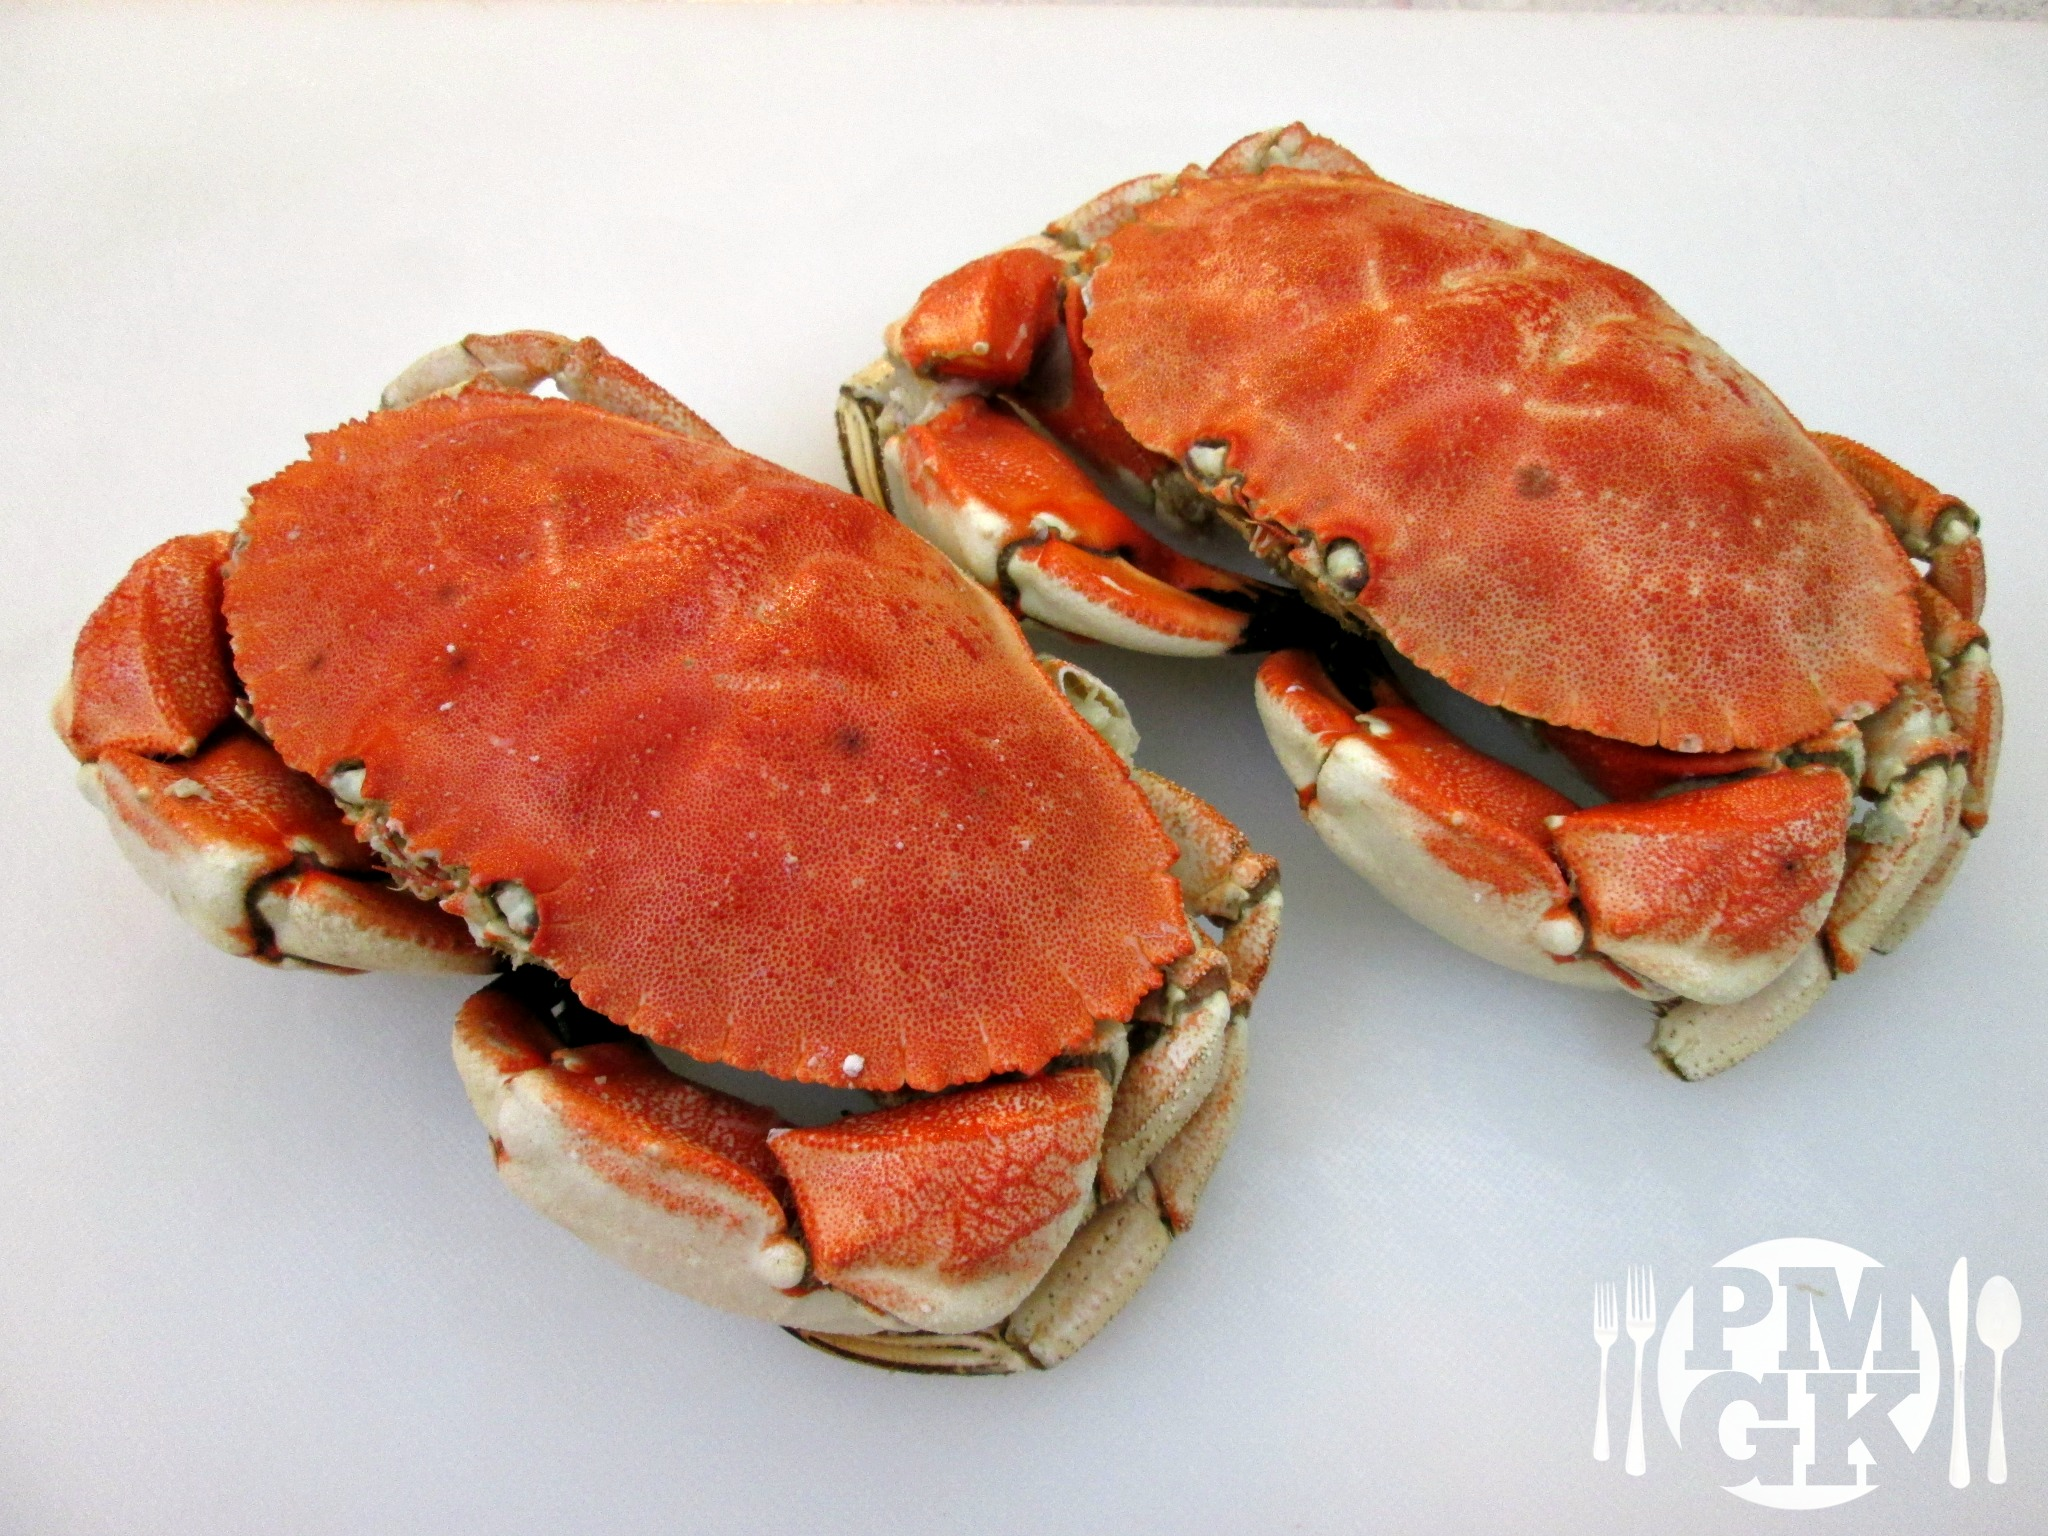 Fried Crab Jonah Dungeness Or Blue Crabs Poor Man S Gourmet Kitchen